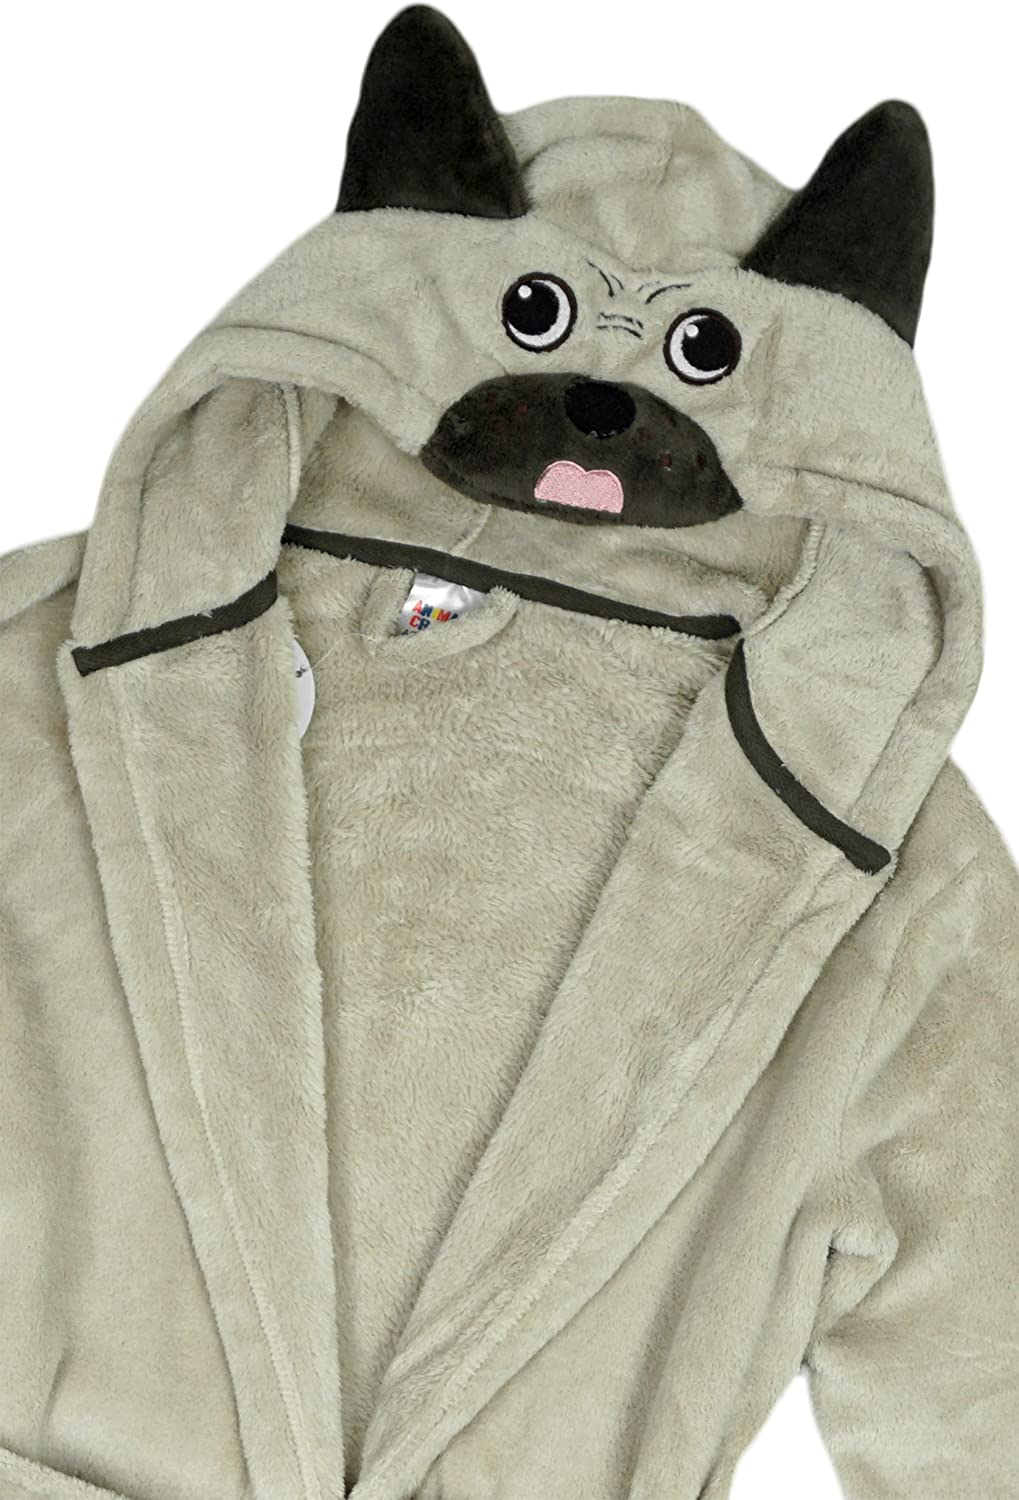 Get Wivvit Girls Pug Face Hooded Puppy Dog Dressing Gown Toddler Bathrobe Sizes from 2 to 4 Years